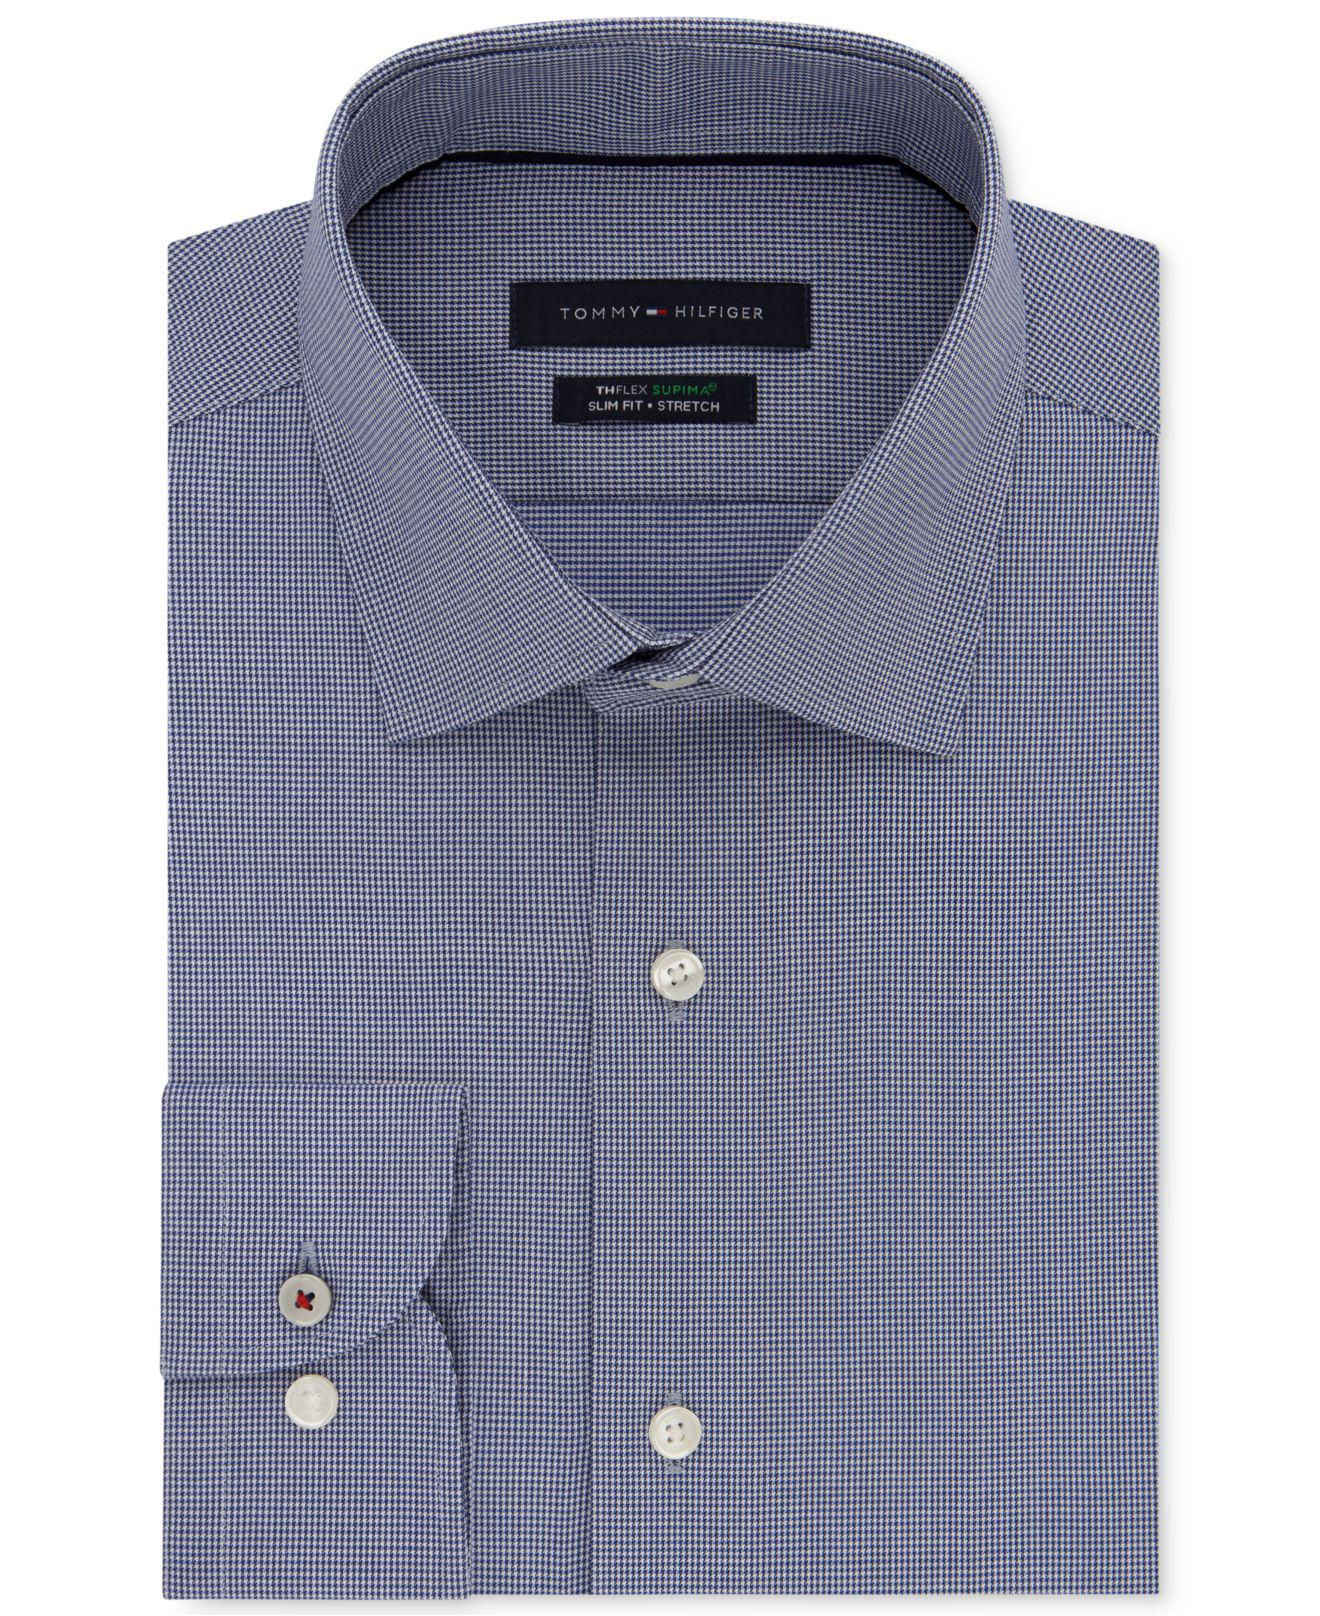 8ac0a5831 Tommy Hilfiger - Blue Slim-fit Non-iron Performance Stretch Check Dress  Shirt for. View fullscreen